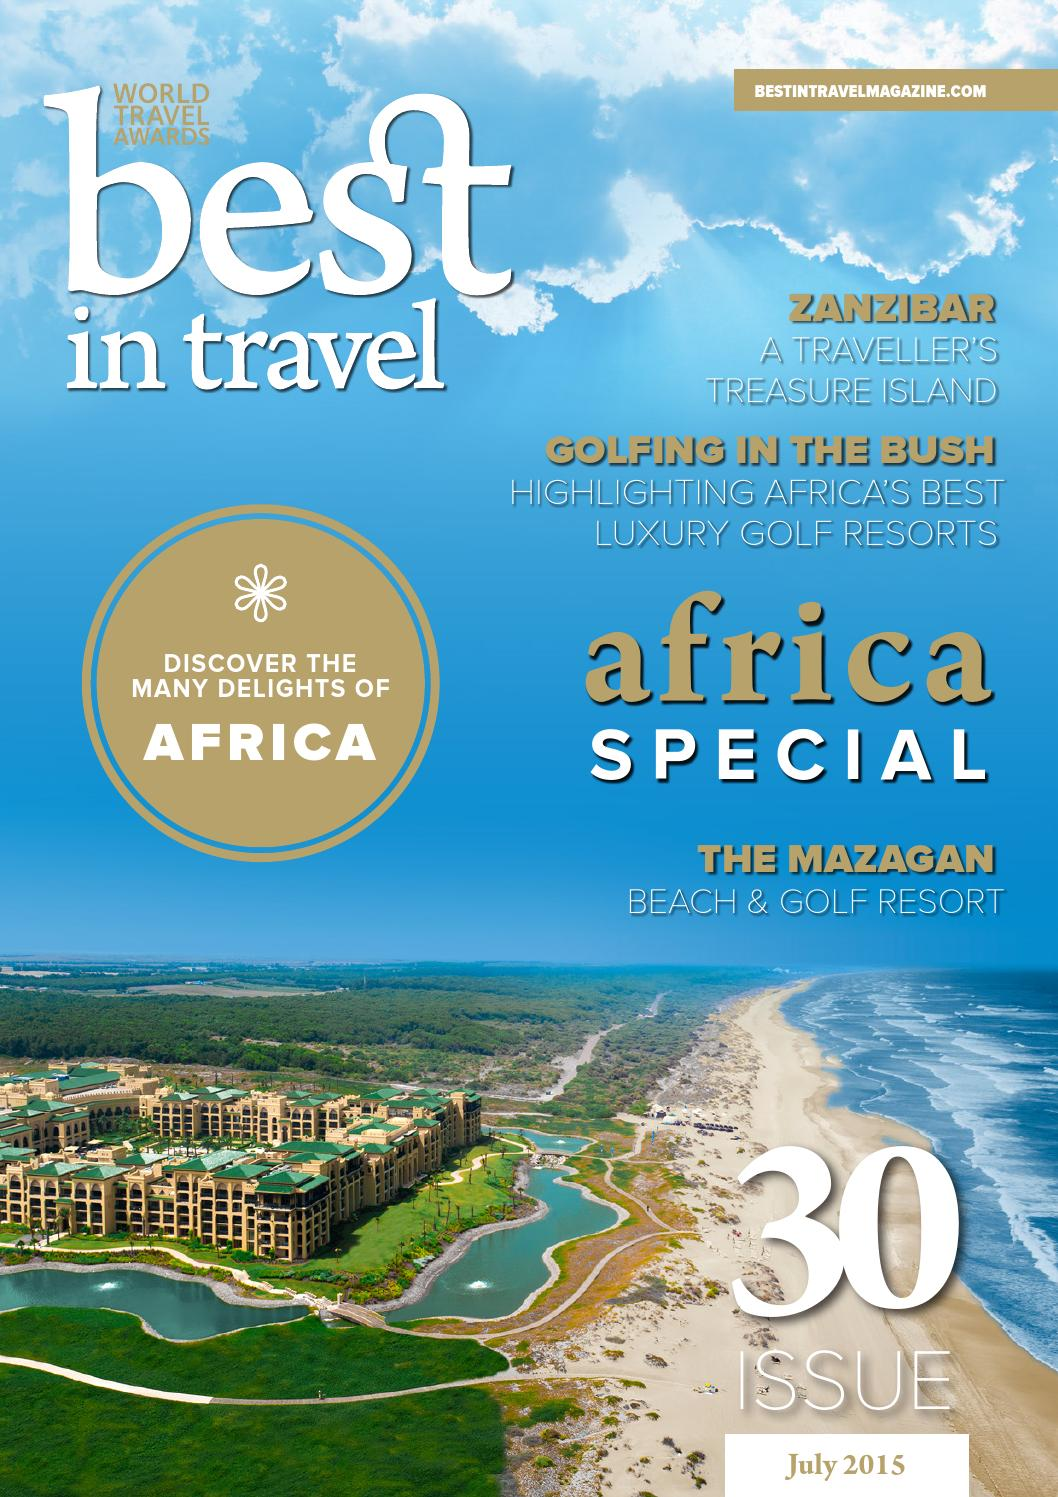 Best In Travel Magazine Issue 30 // July 2015 by Best in